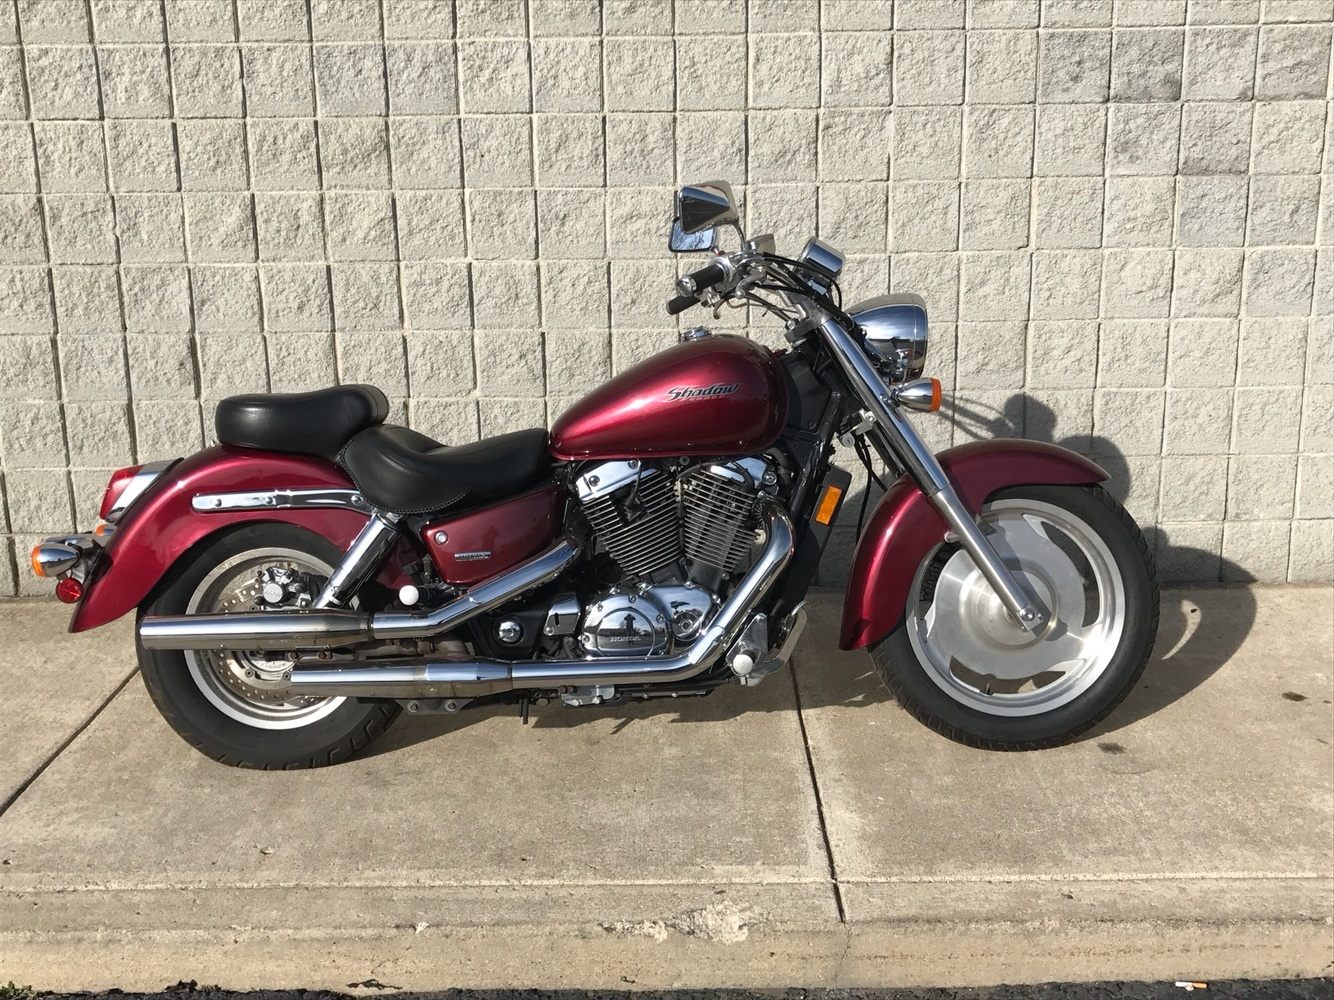 2007 honda shadow sabre motorcycles monroe michigan hm701521